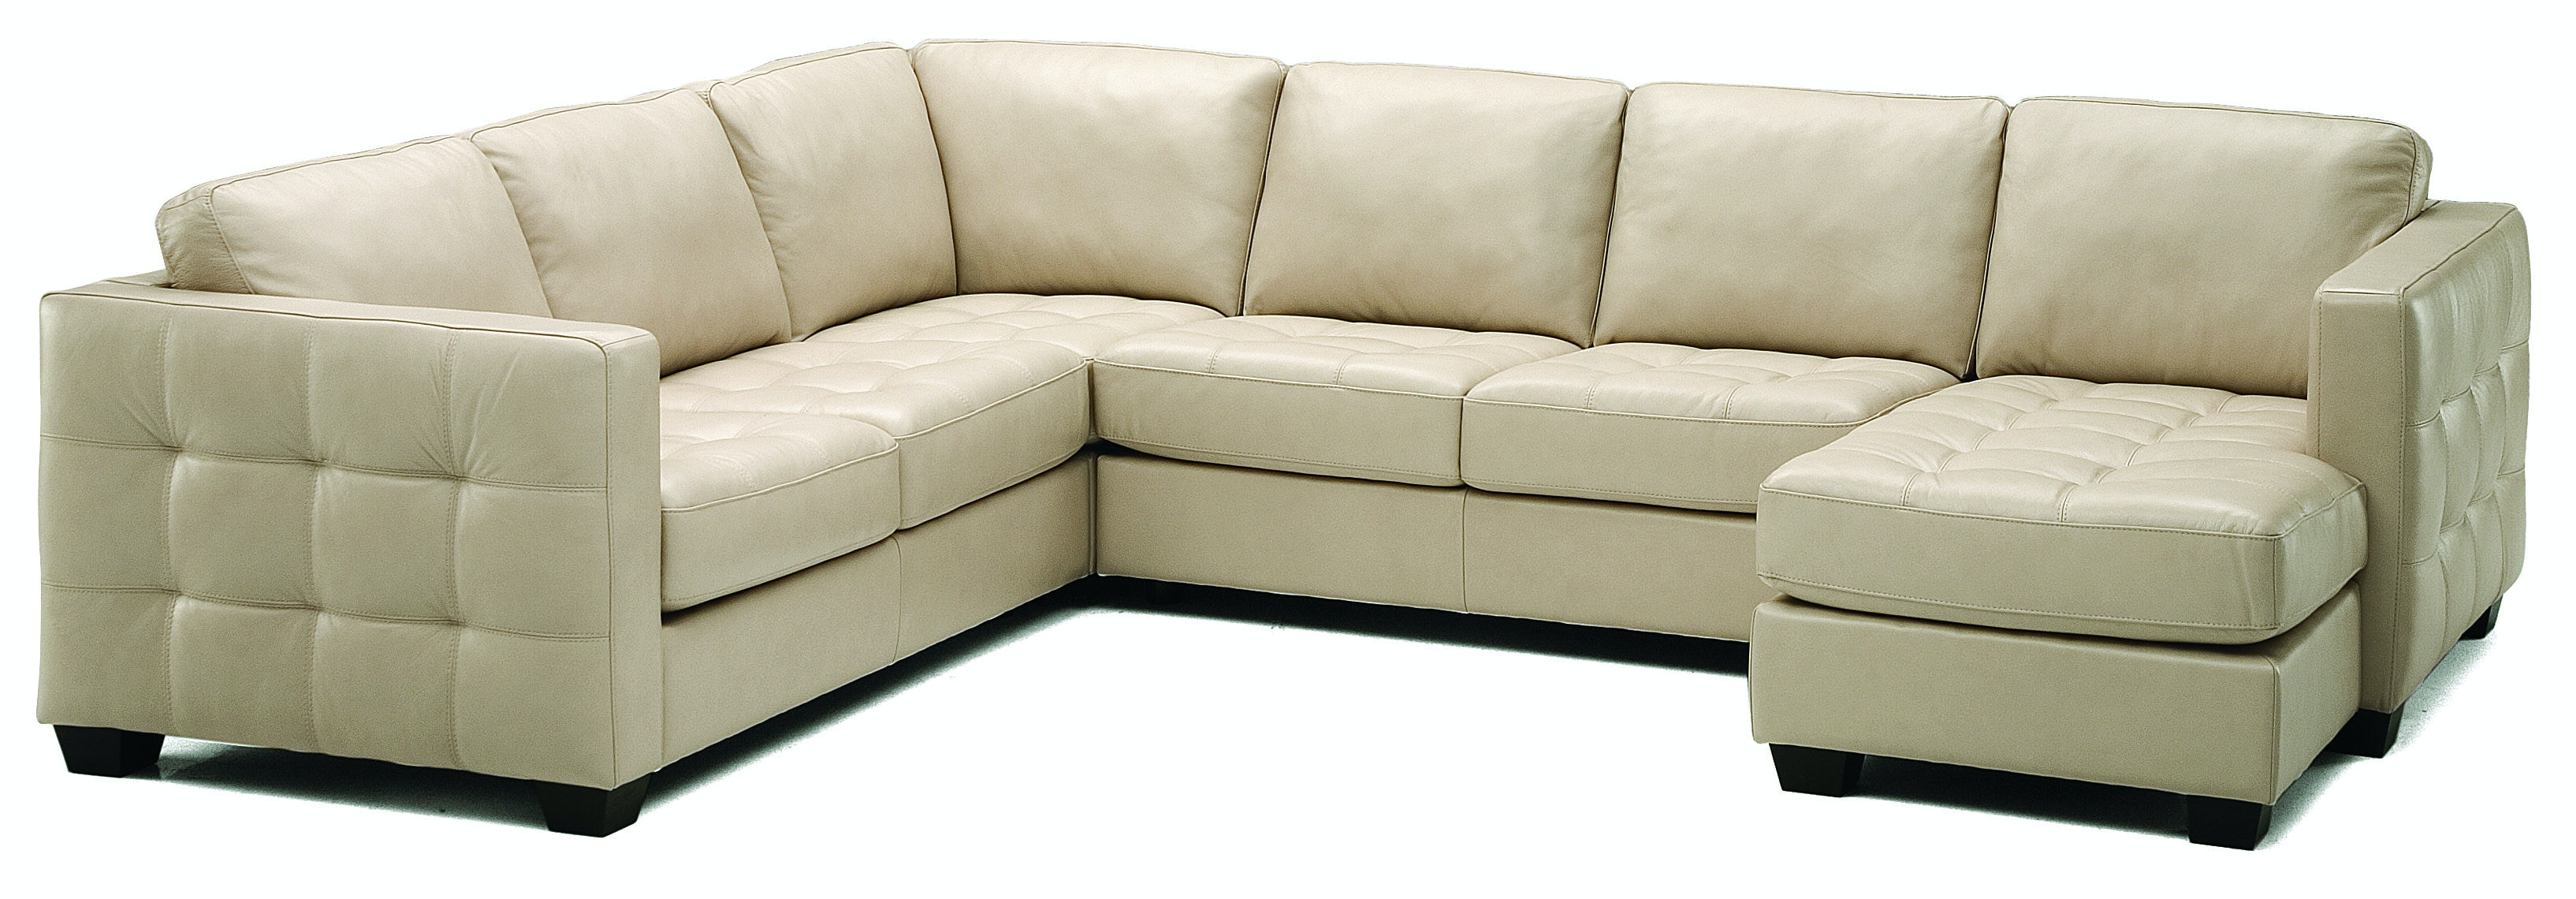 Marvelous 77558 Sectional